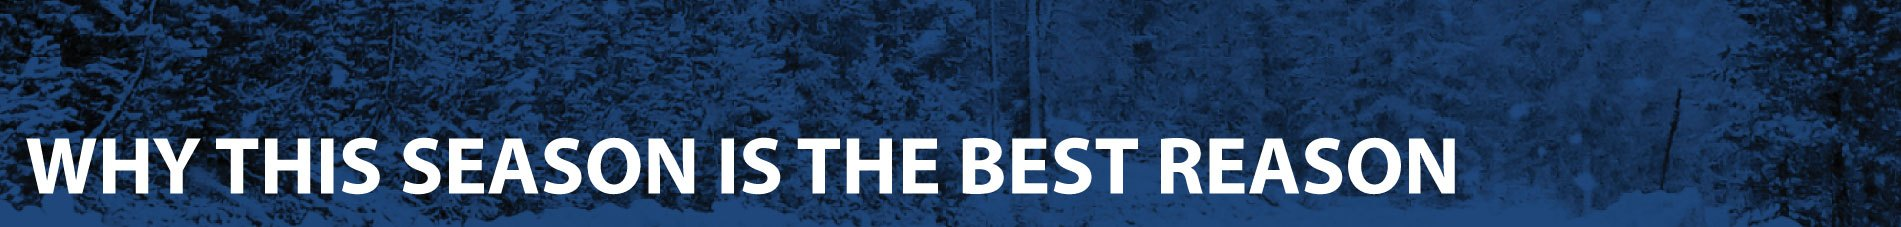 Winter Tires. Why This Season is the Best Reason! Winter Tire Promotions